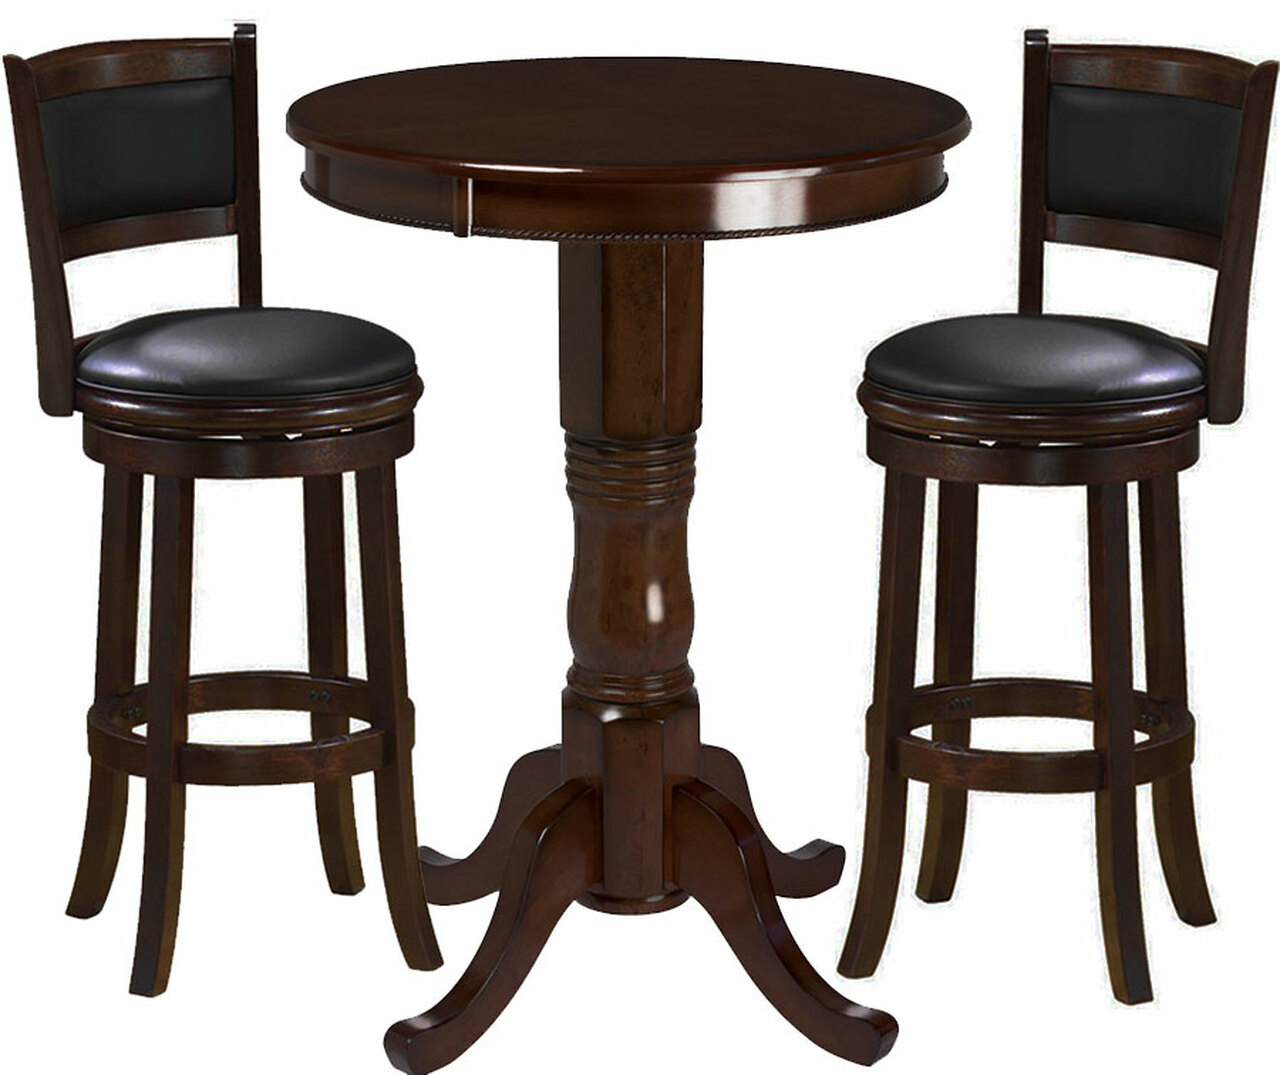 pub table and chairs 3 piece set 2 chair covers for hire auckland ram cappuccino ozone billiards